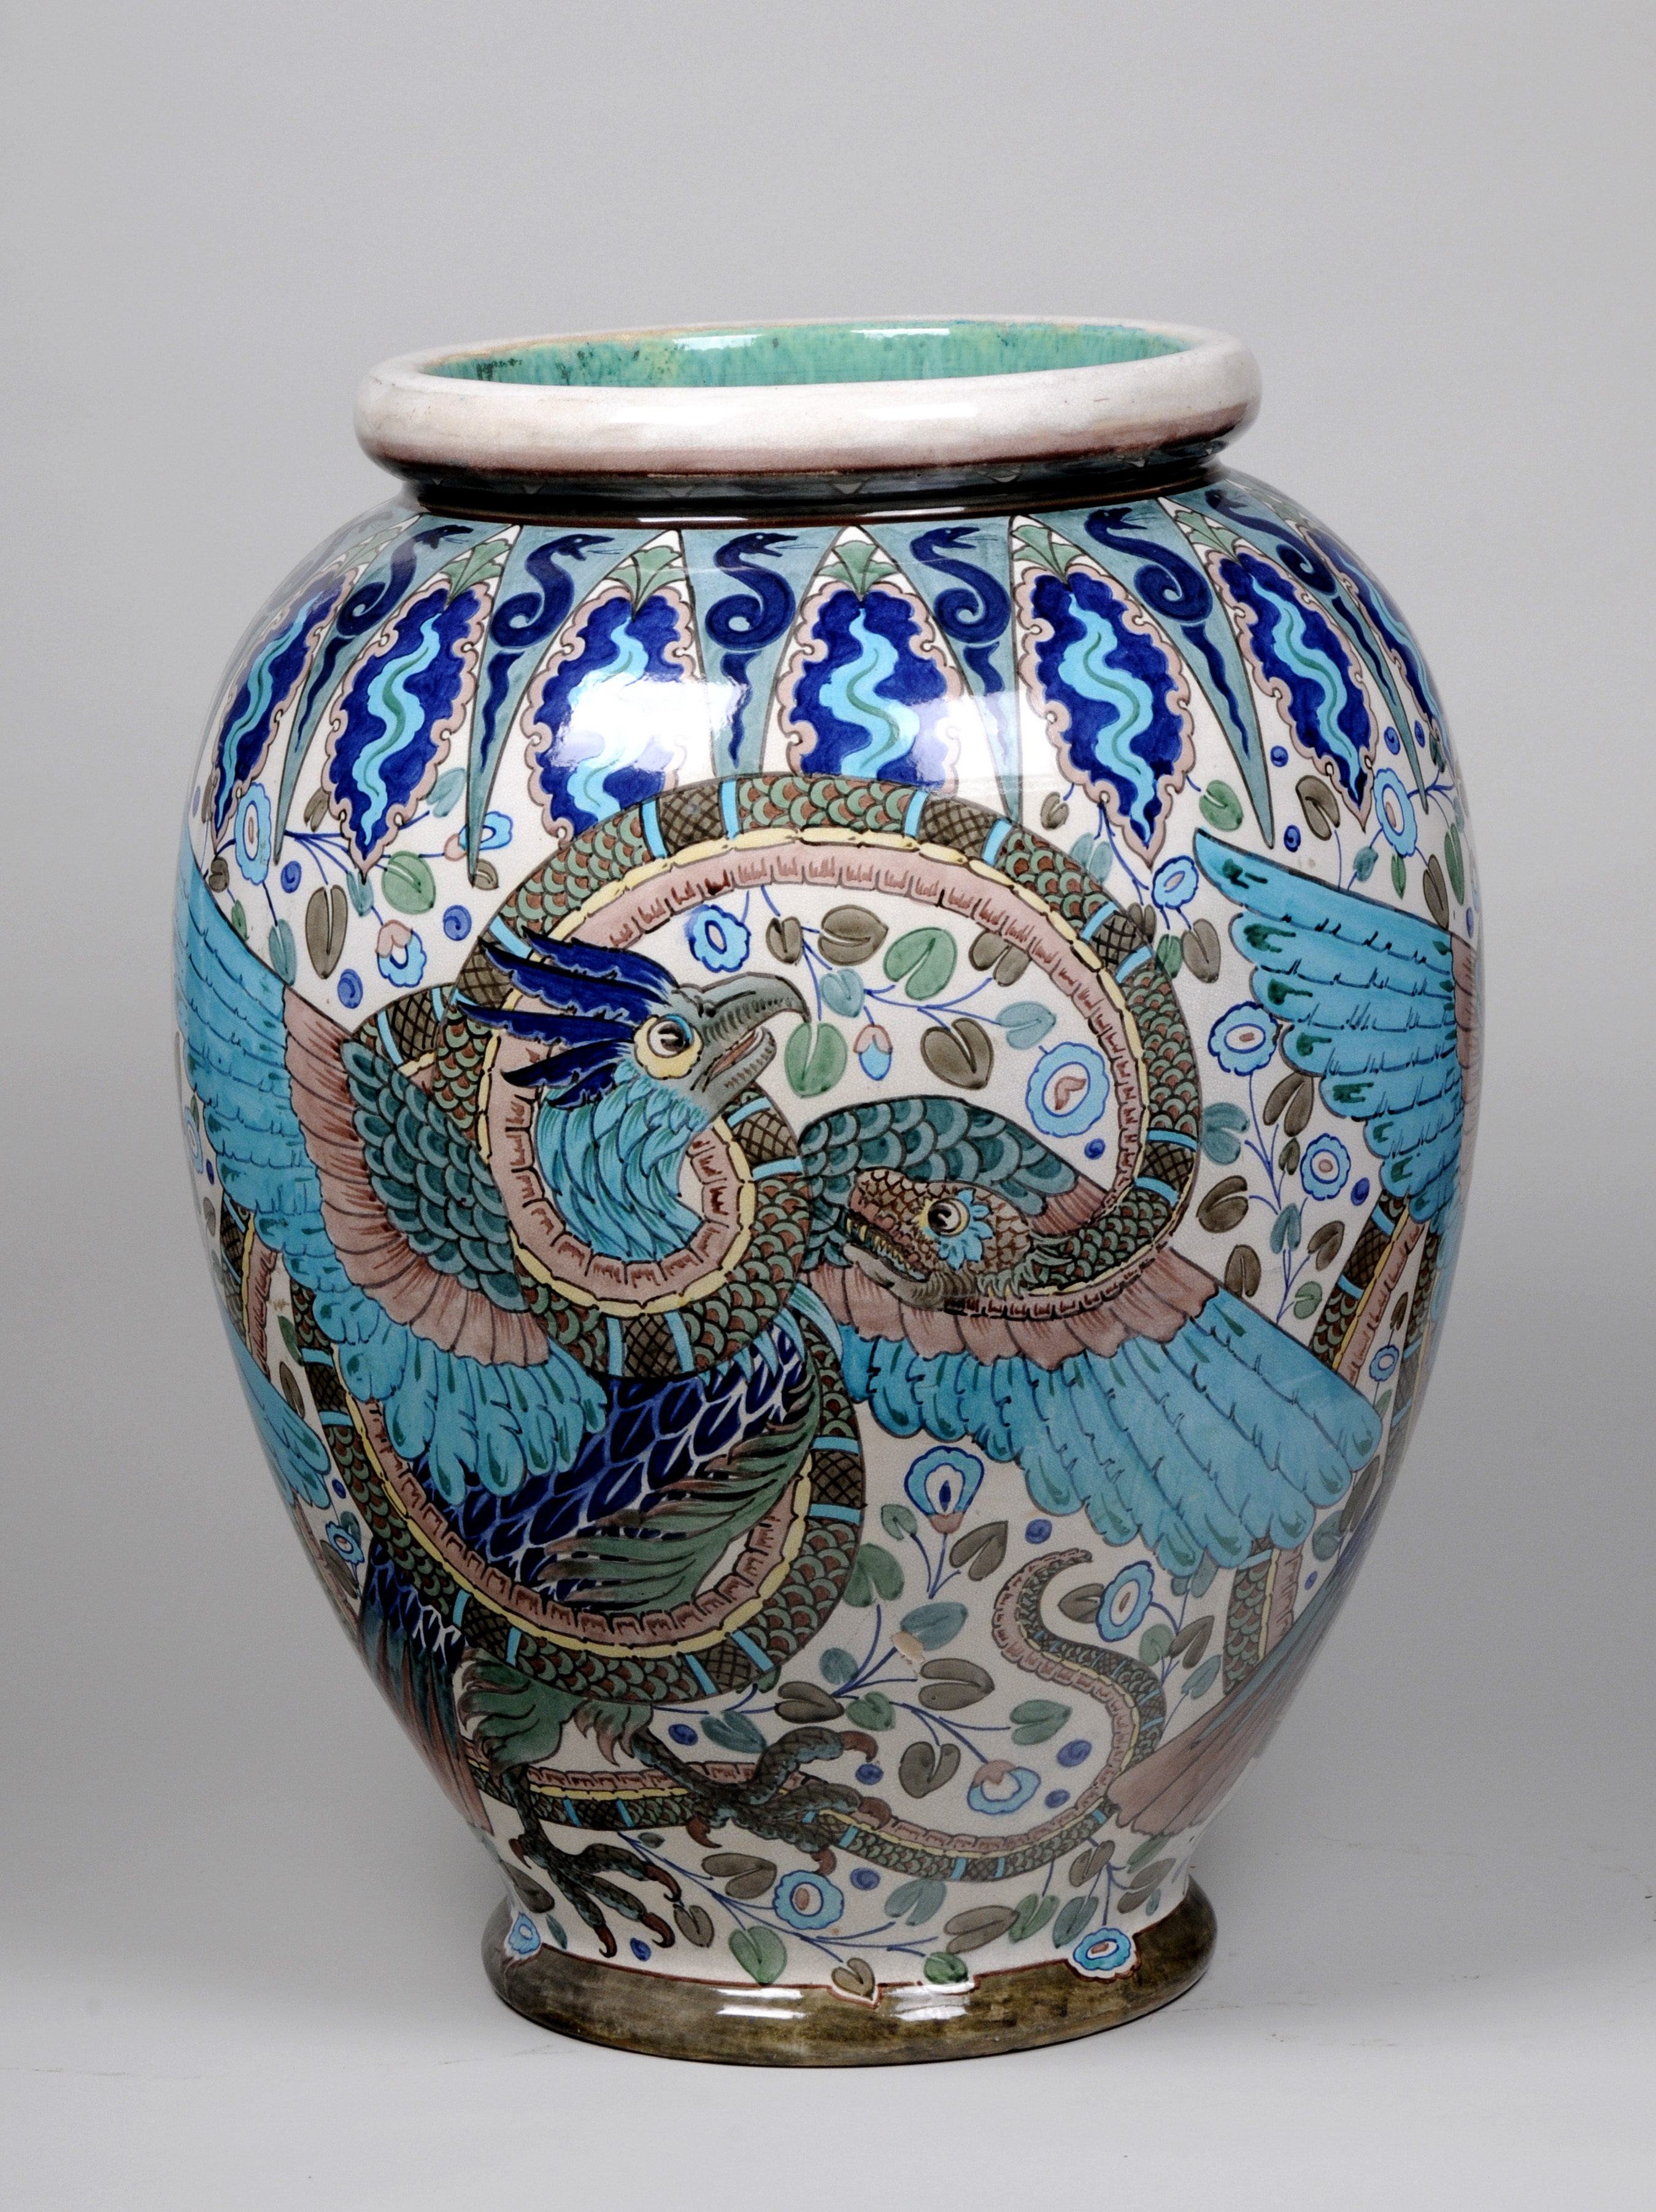 Ceramic vase in shades of blue glaze, with a phoenix and snake design.